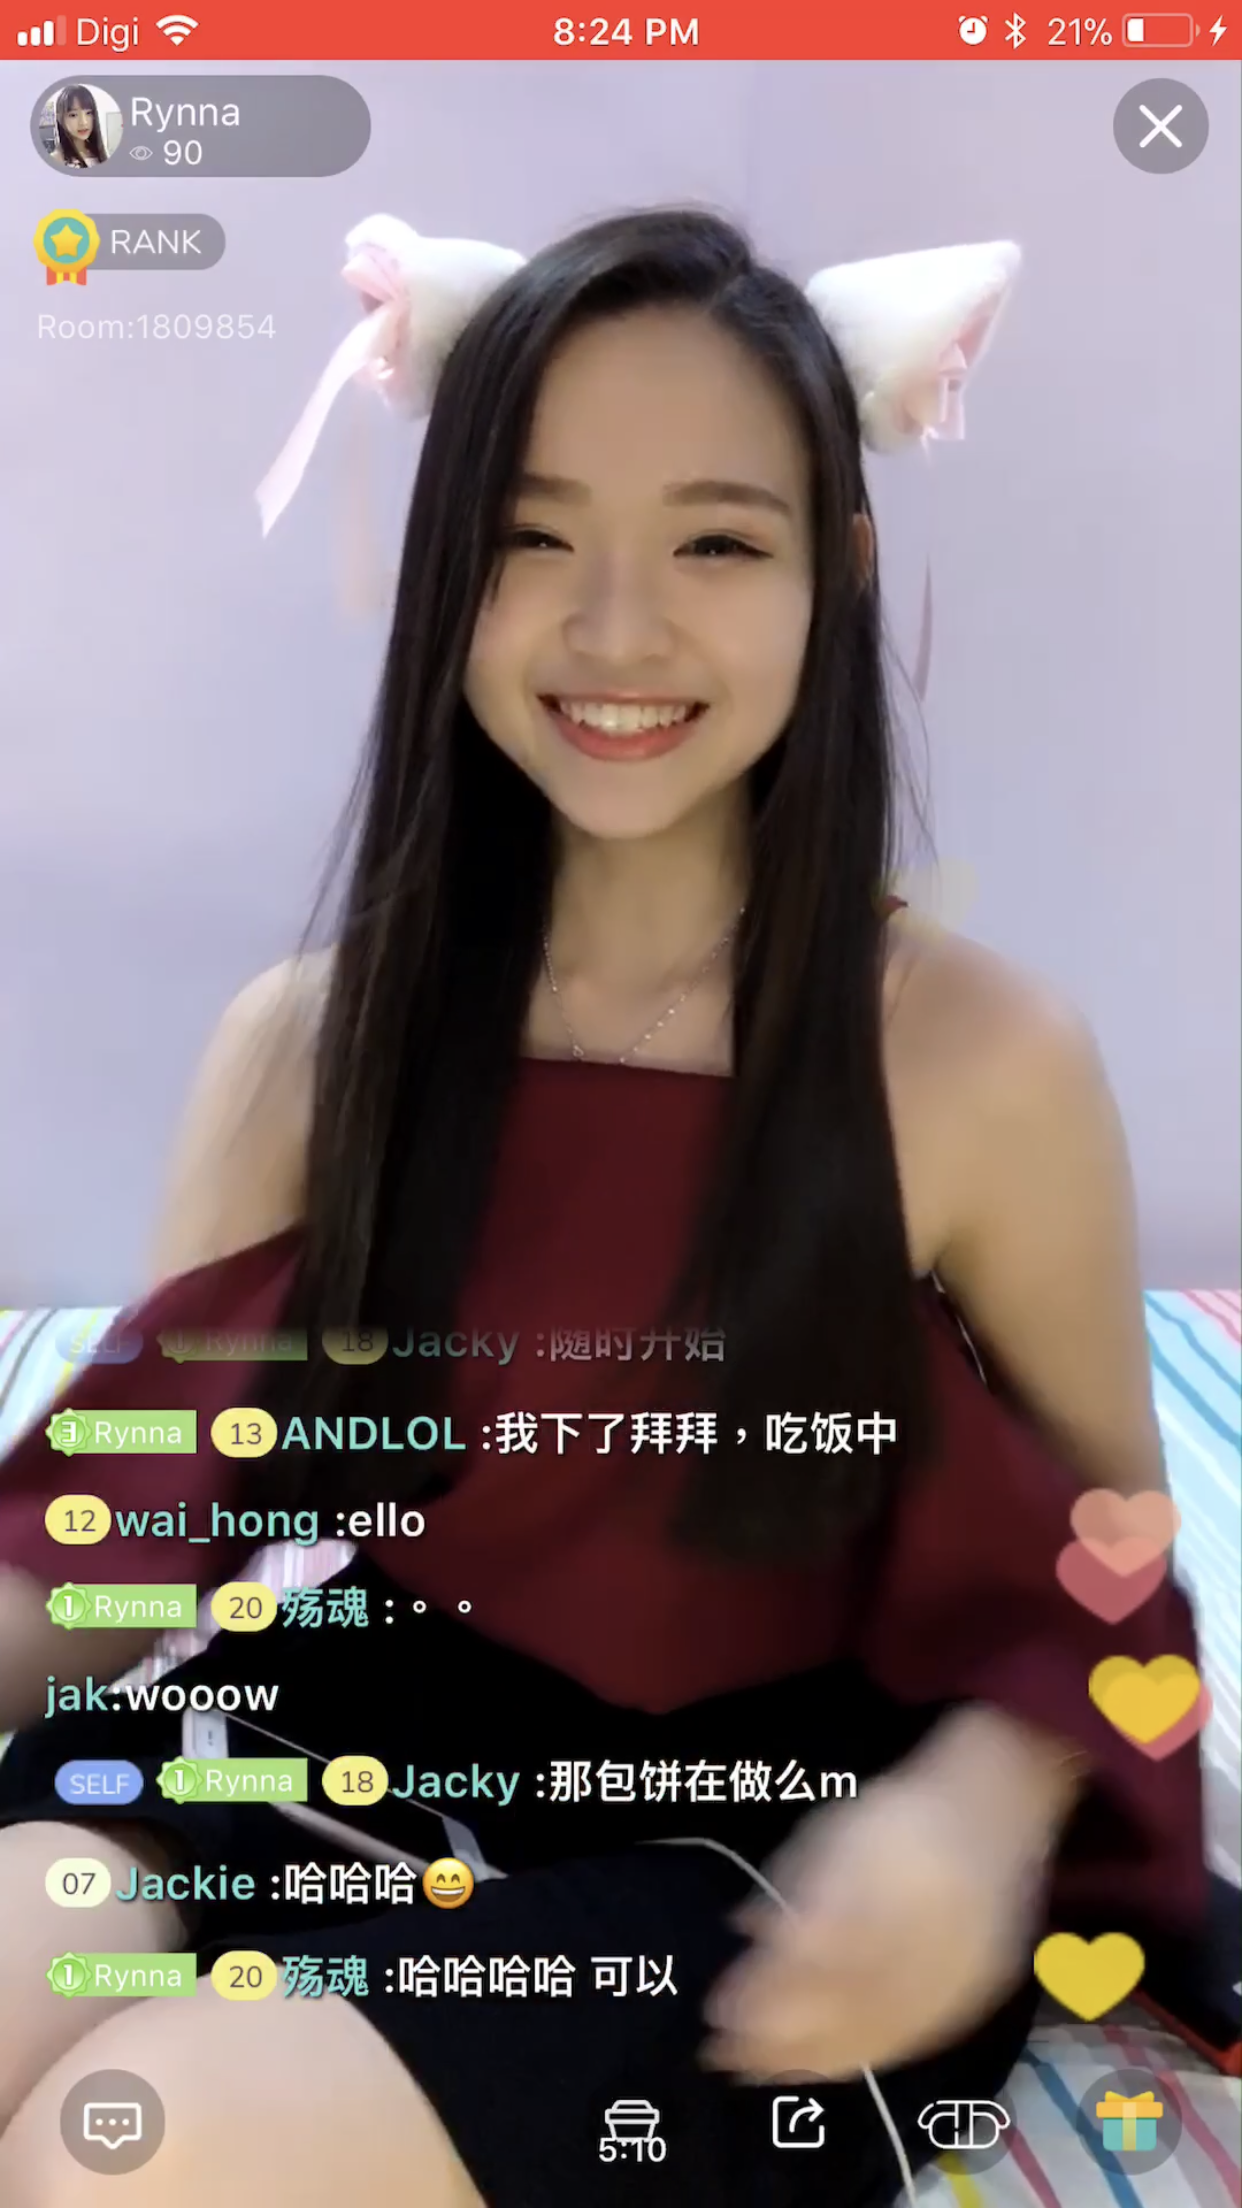 Rynna chatting with her viewers on Tamago.